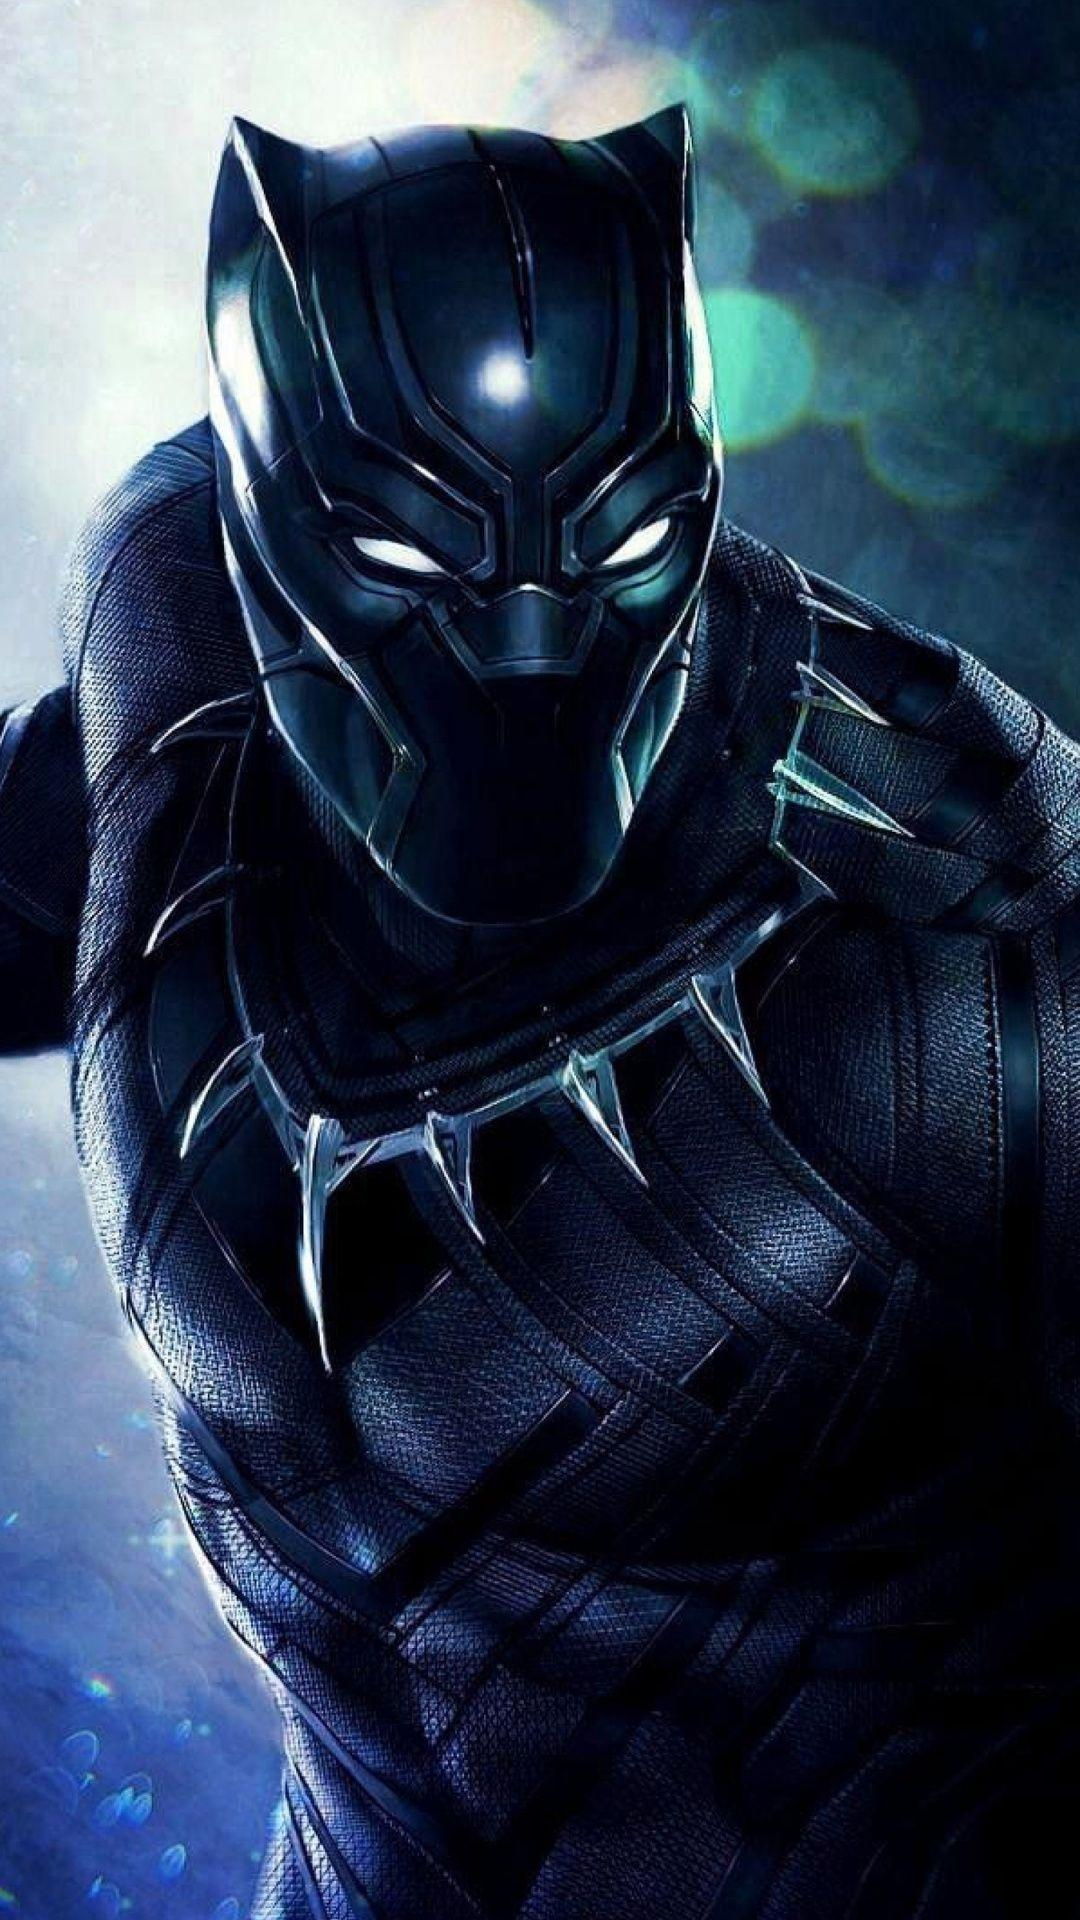 Download 1080x1920 wallpapers black panther, superhero, artwork